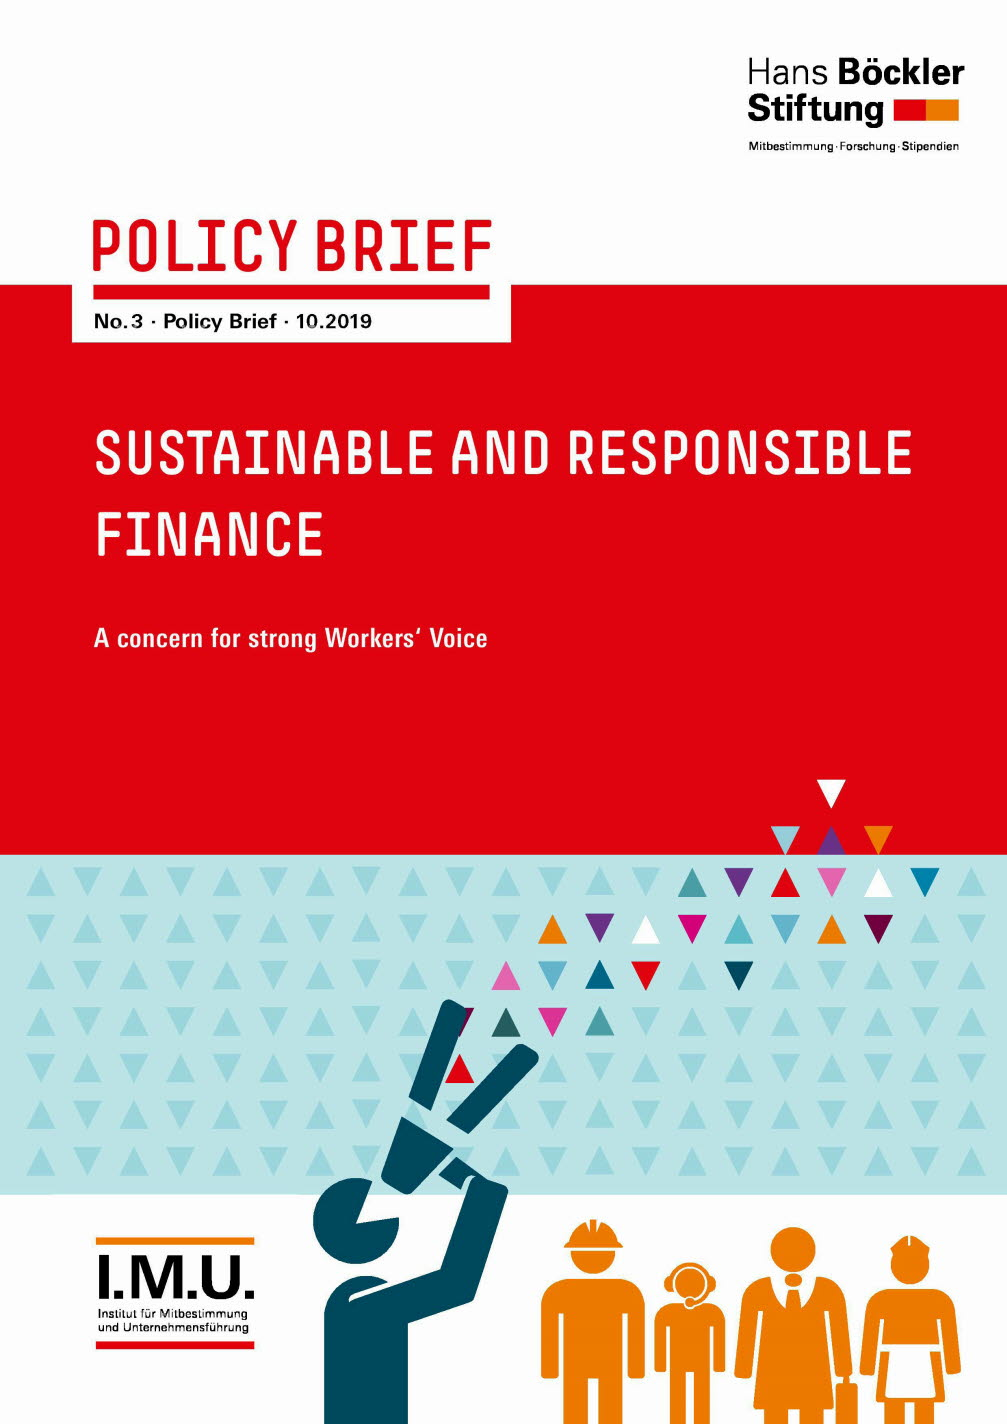 Sustainable and responsible finance